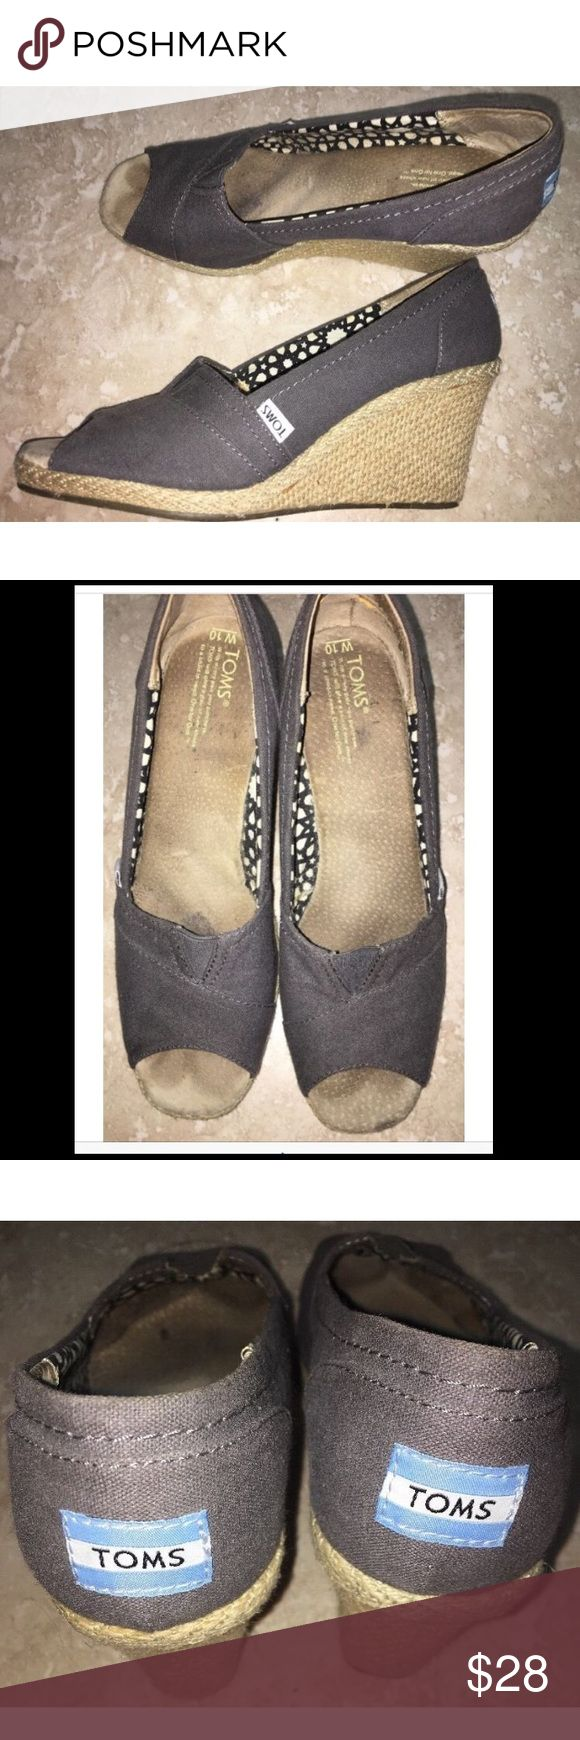 TOMS Women's Size 10 Blue Gray Wedge Shoes Tom's TOMS Women's Size 10 Blue Grey Gray Wedge Shoes Tom's TOMS Shoes Wedges